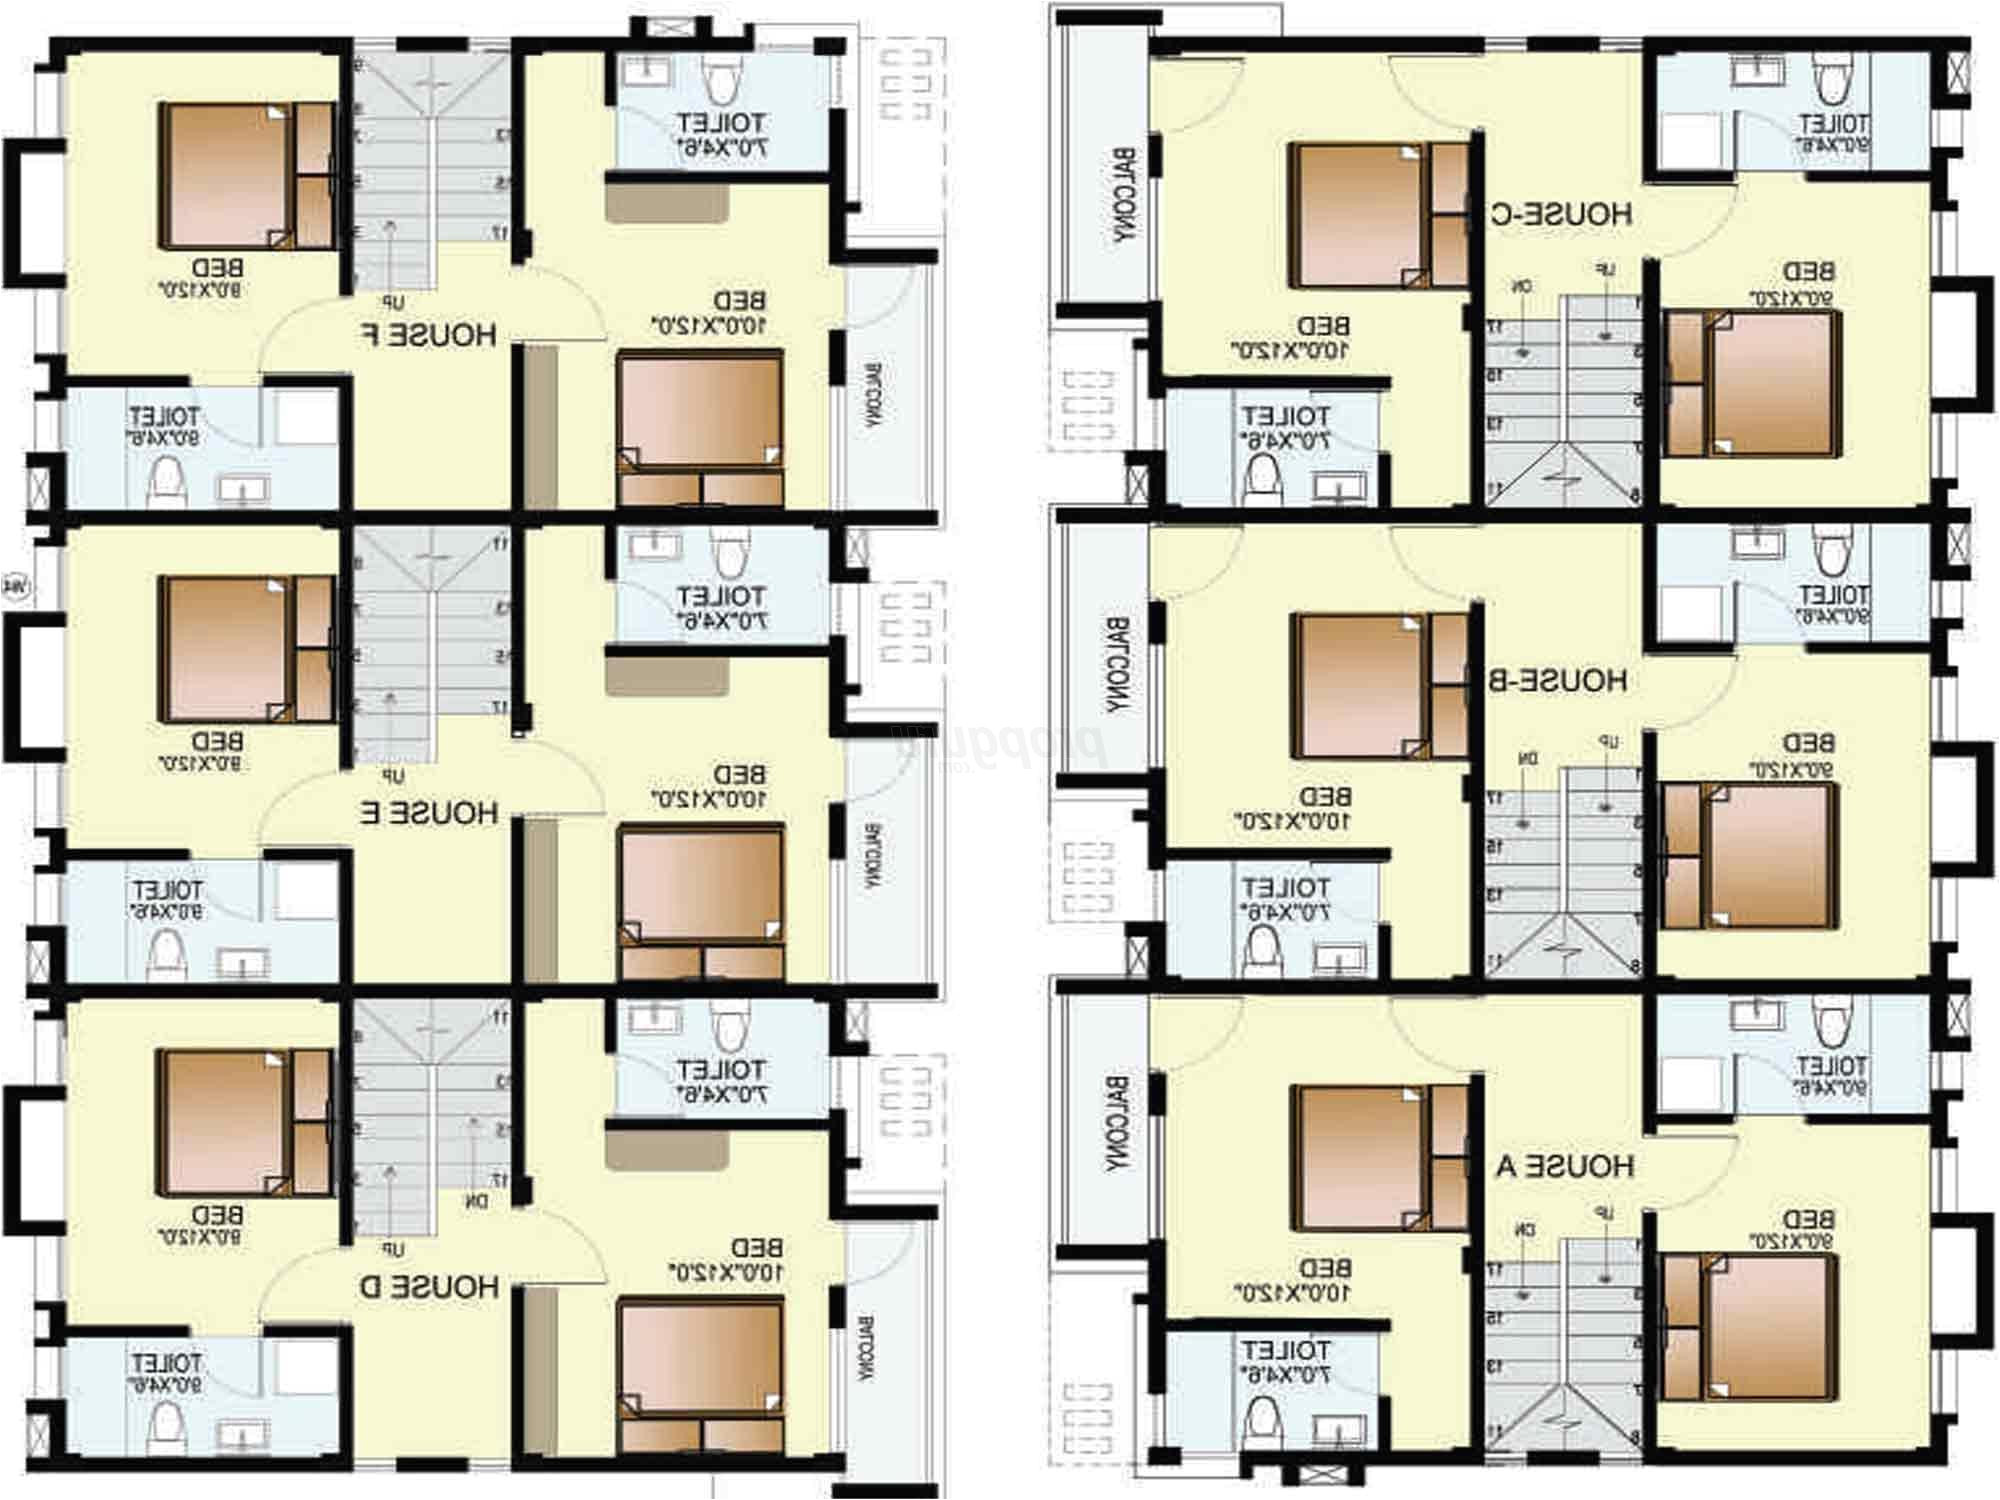 simple residential house plans ideas about multi residential house plans free home designs free residential house plans l eece74218f318286